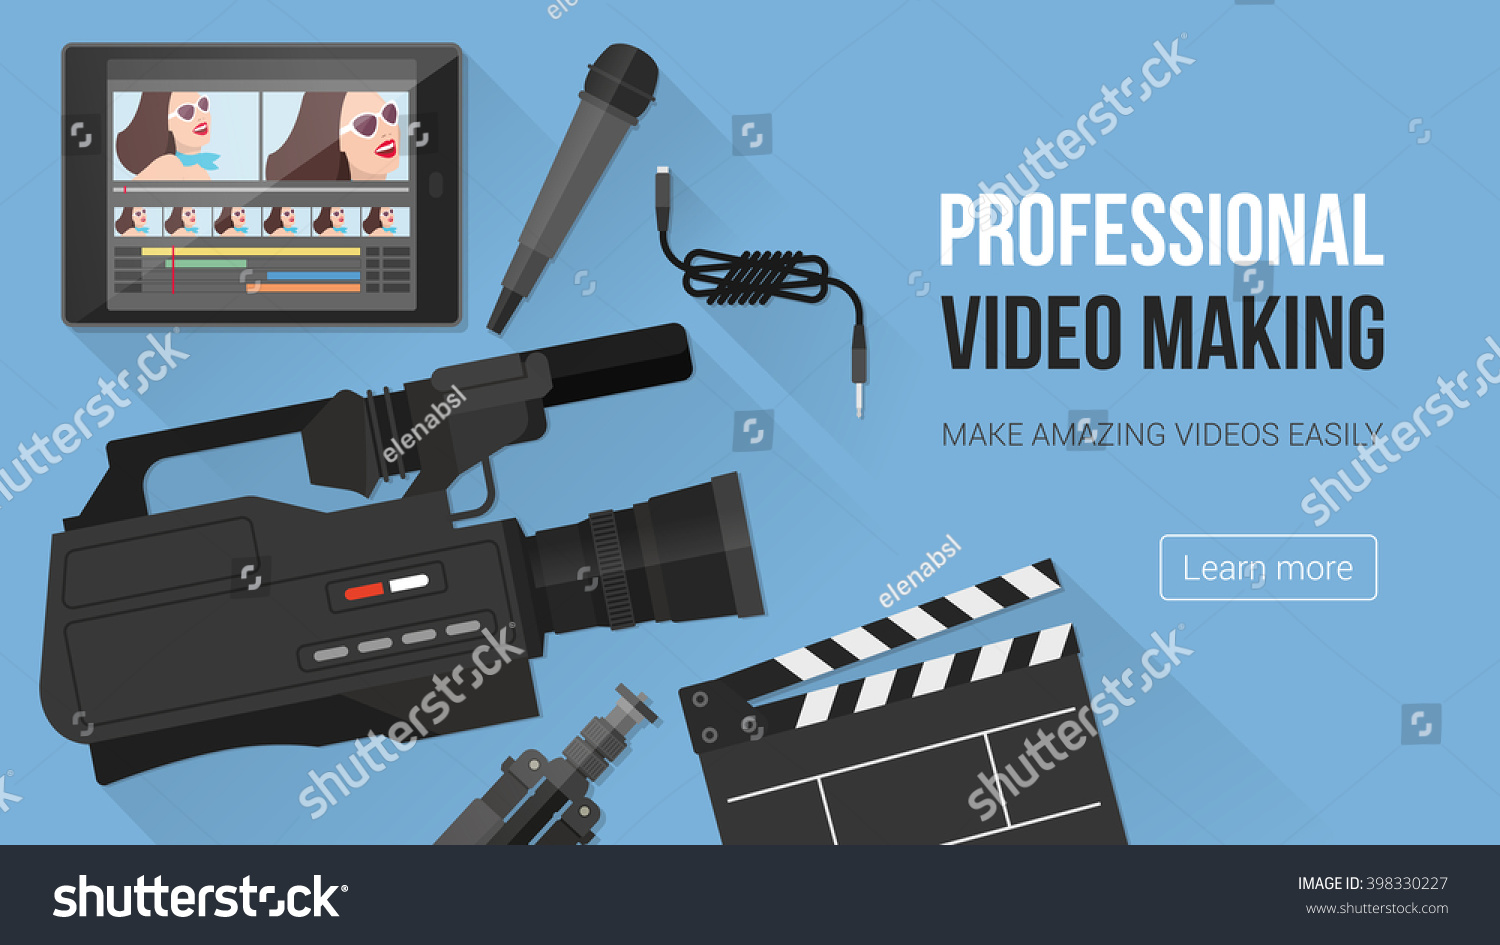 Video making shooting and editing with professional equipment and video camera on a desk